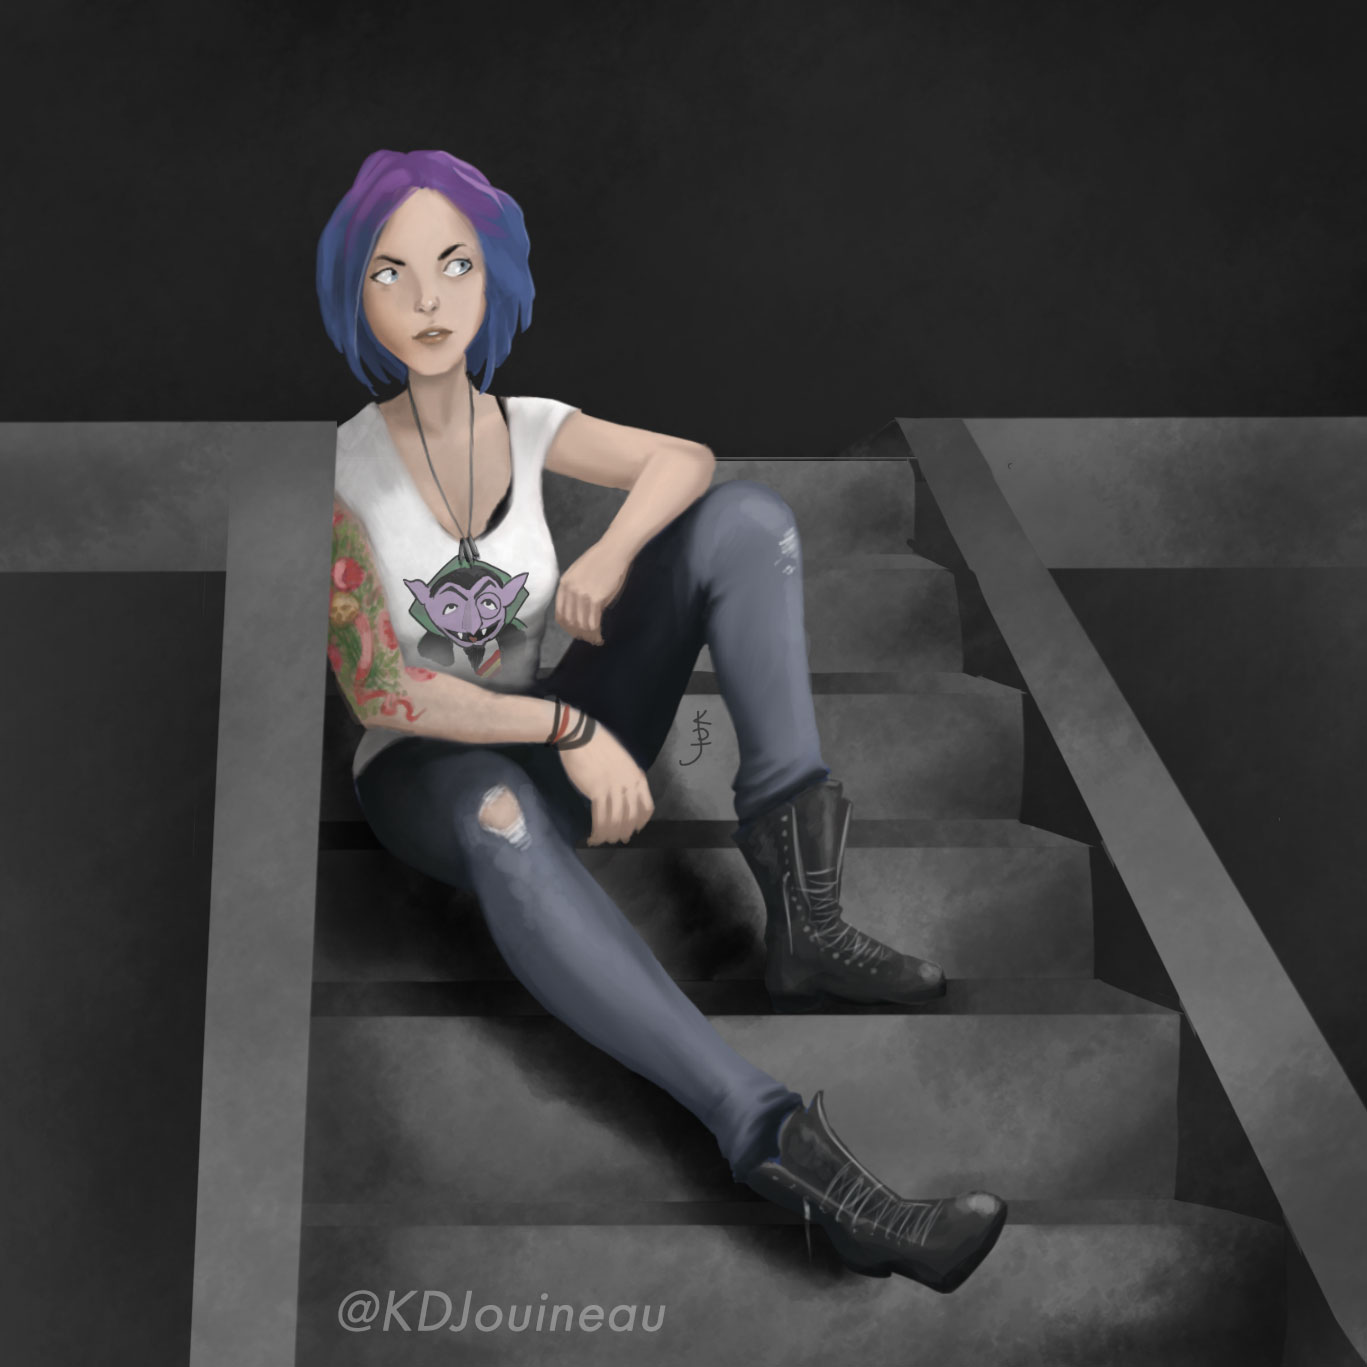 Chloe - Life is Strange: Artwork by KDJouineau